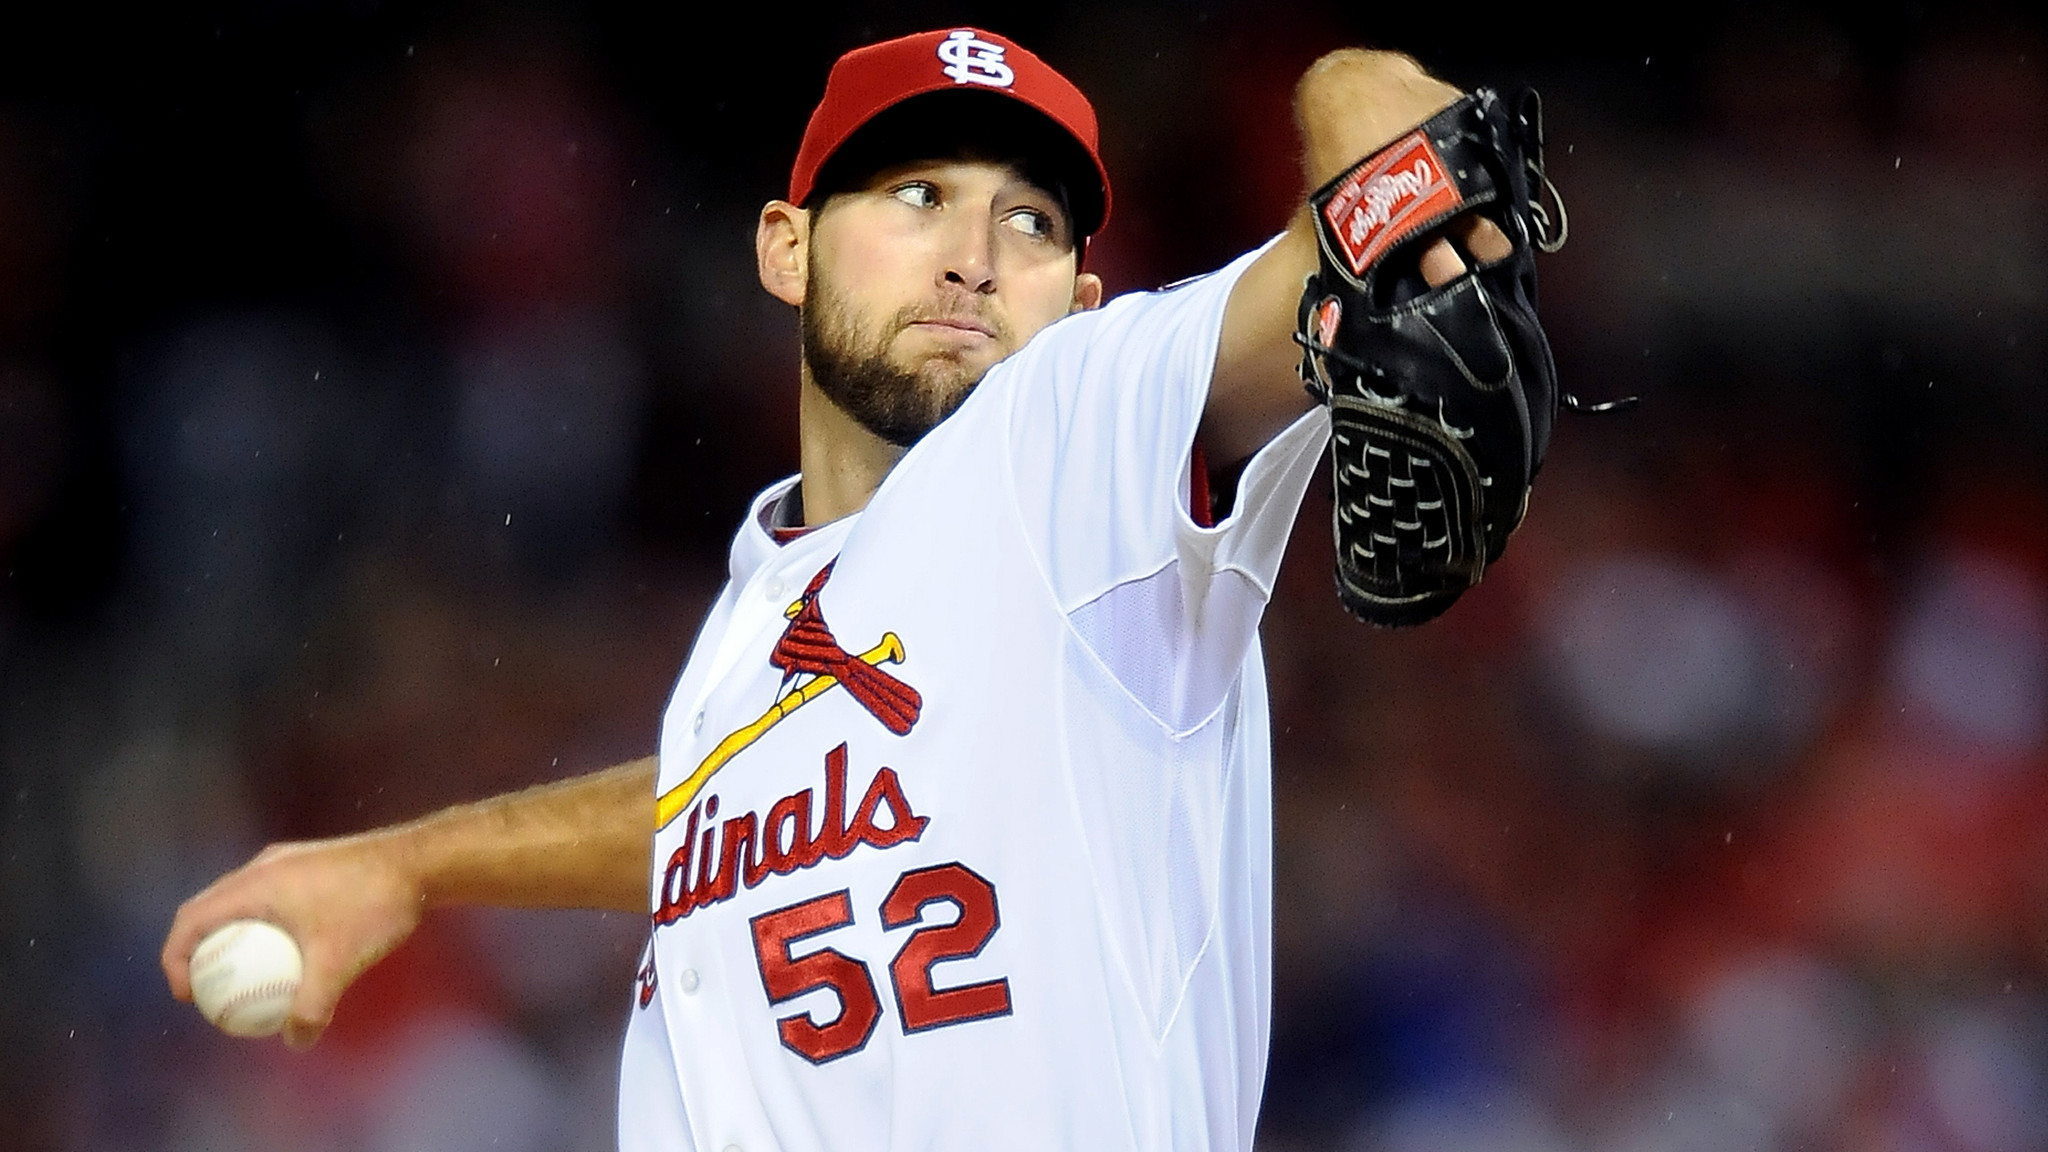 Michael Wacha to start for Cardinals on Thursday